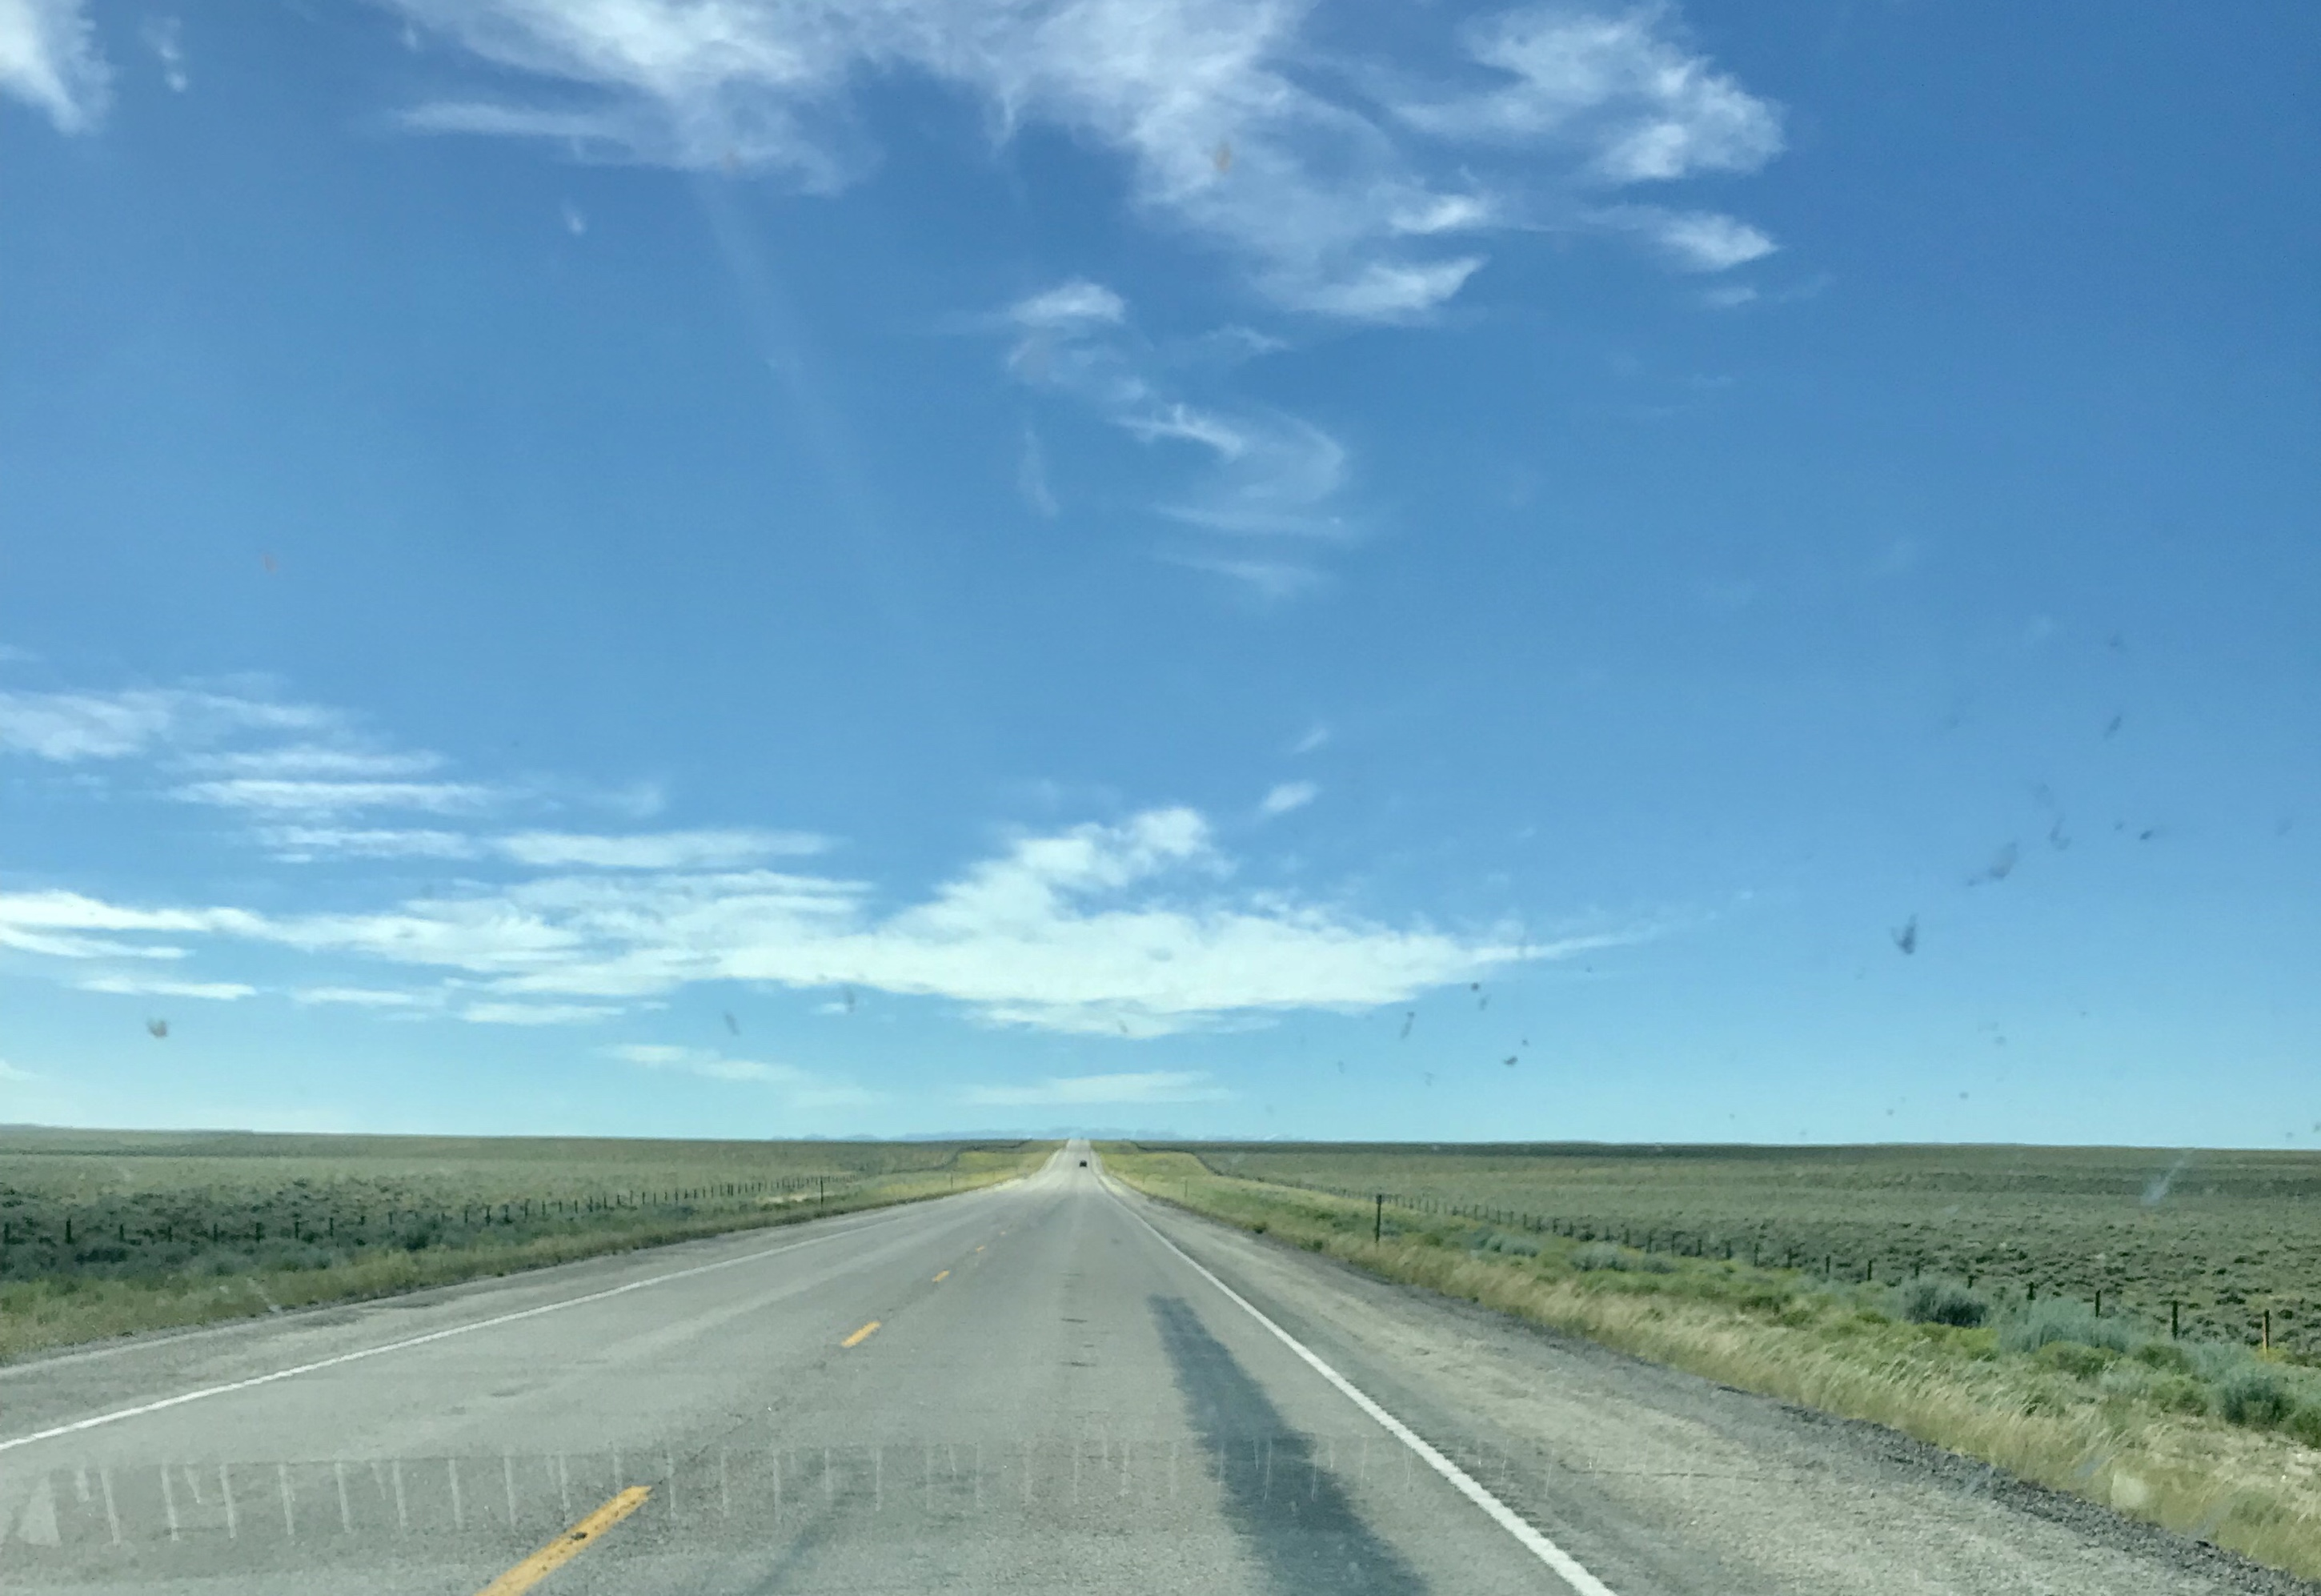 Typical highway scenery in Wyoming